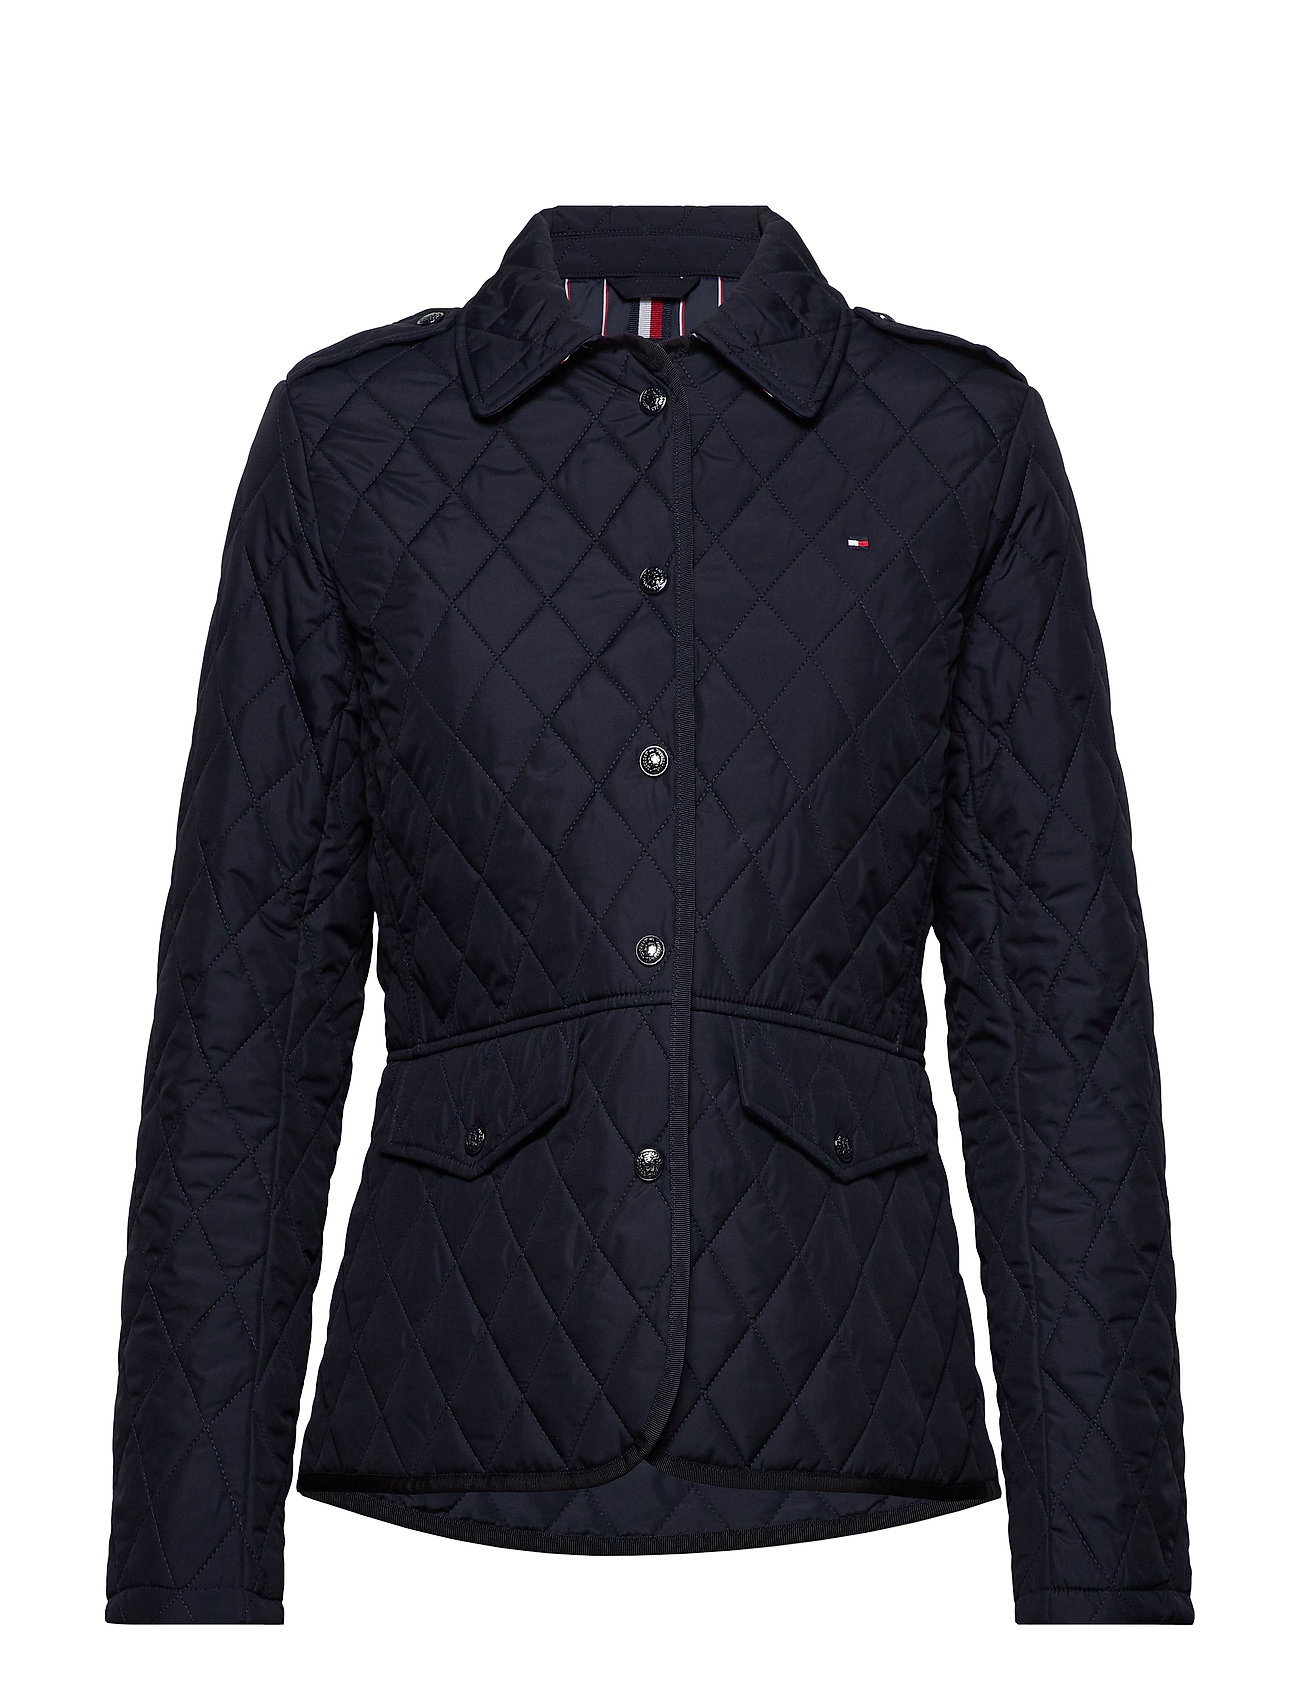 Tommy Hilfiger TH ESS QUILTED JACKET - DESERT SKY